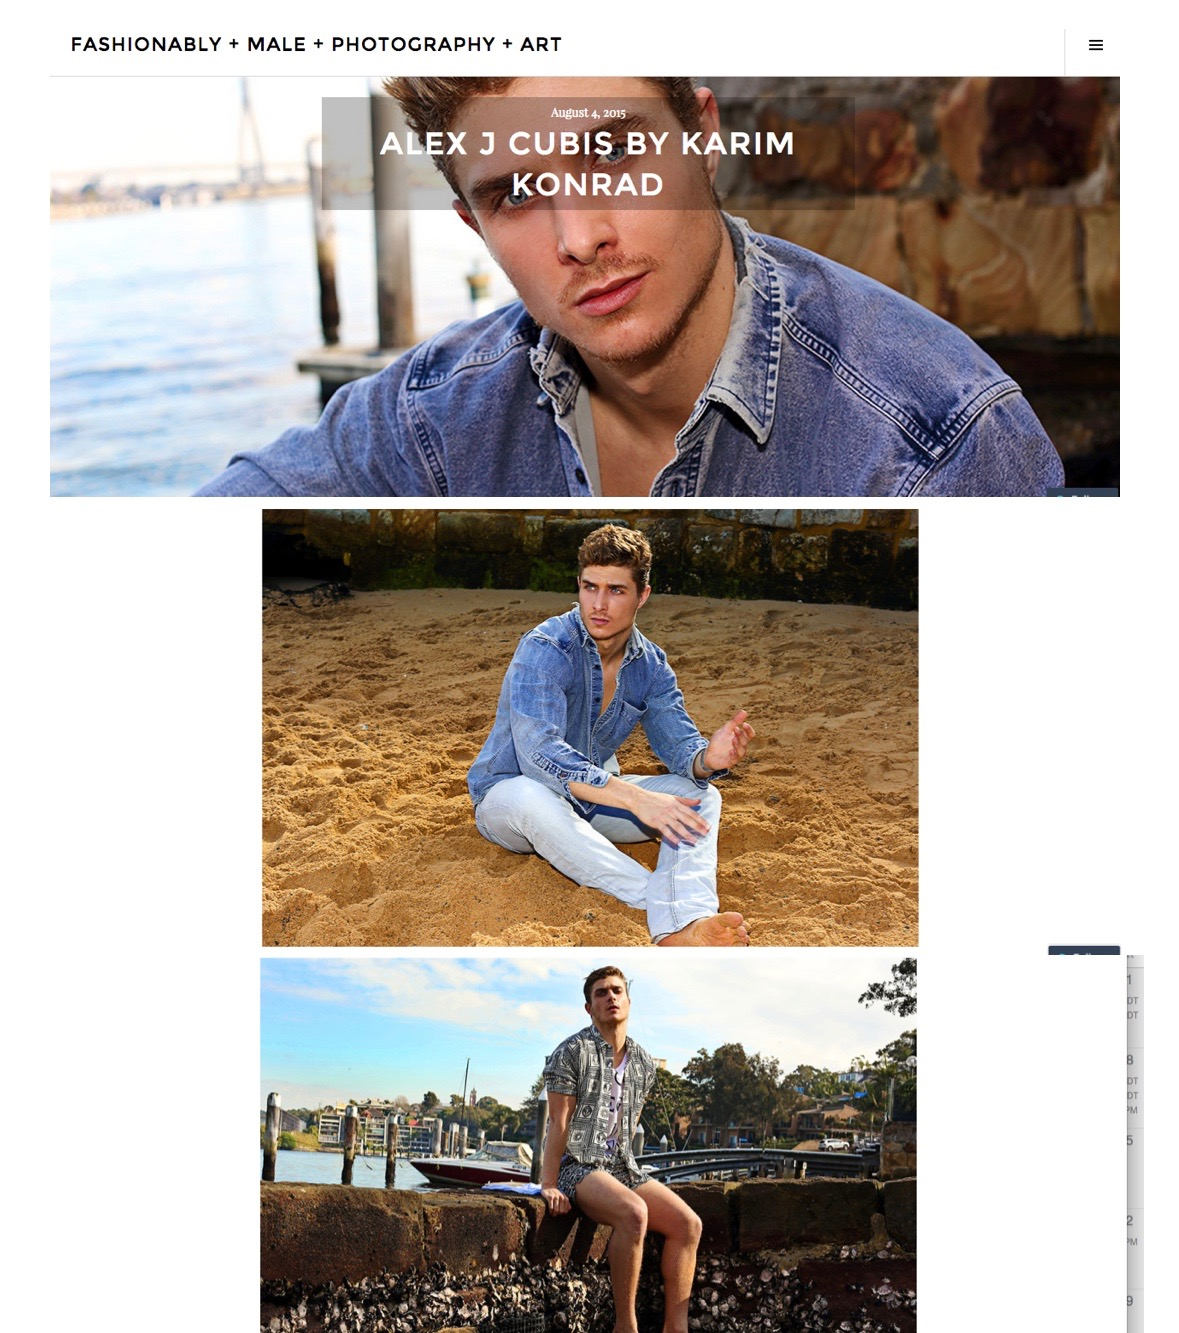 Fashionably Male Editorial & Profile: Alex Cubis